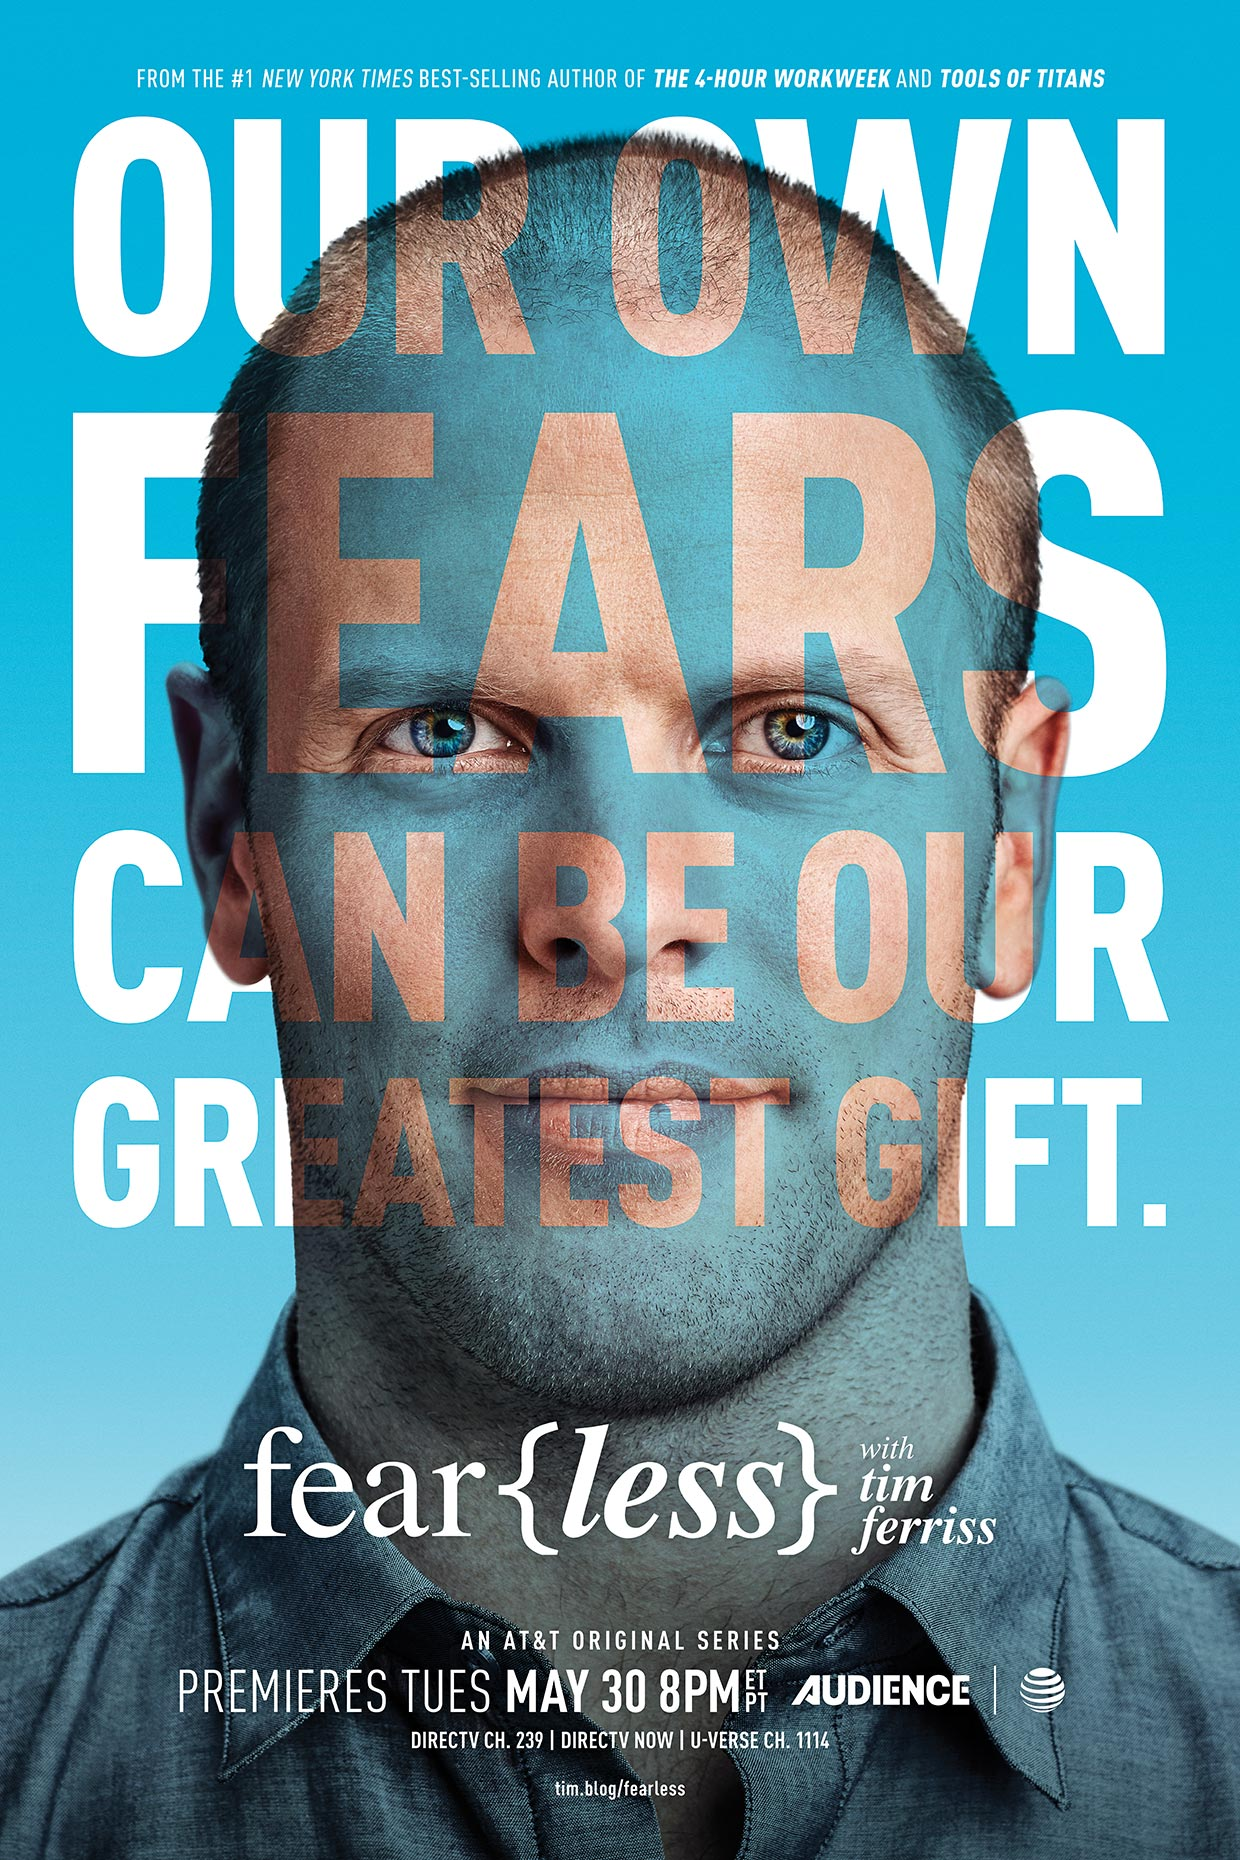 Audience_FEARLESS_Tim-Ferriss